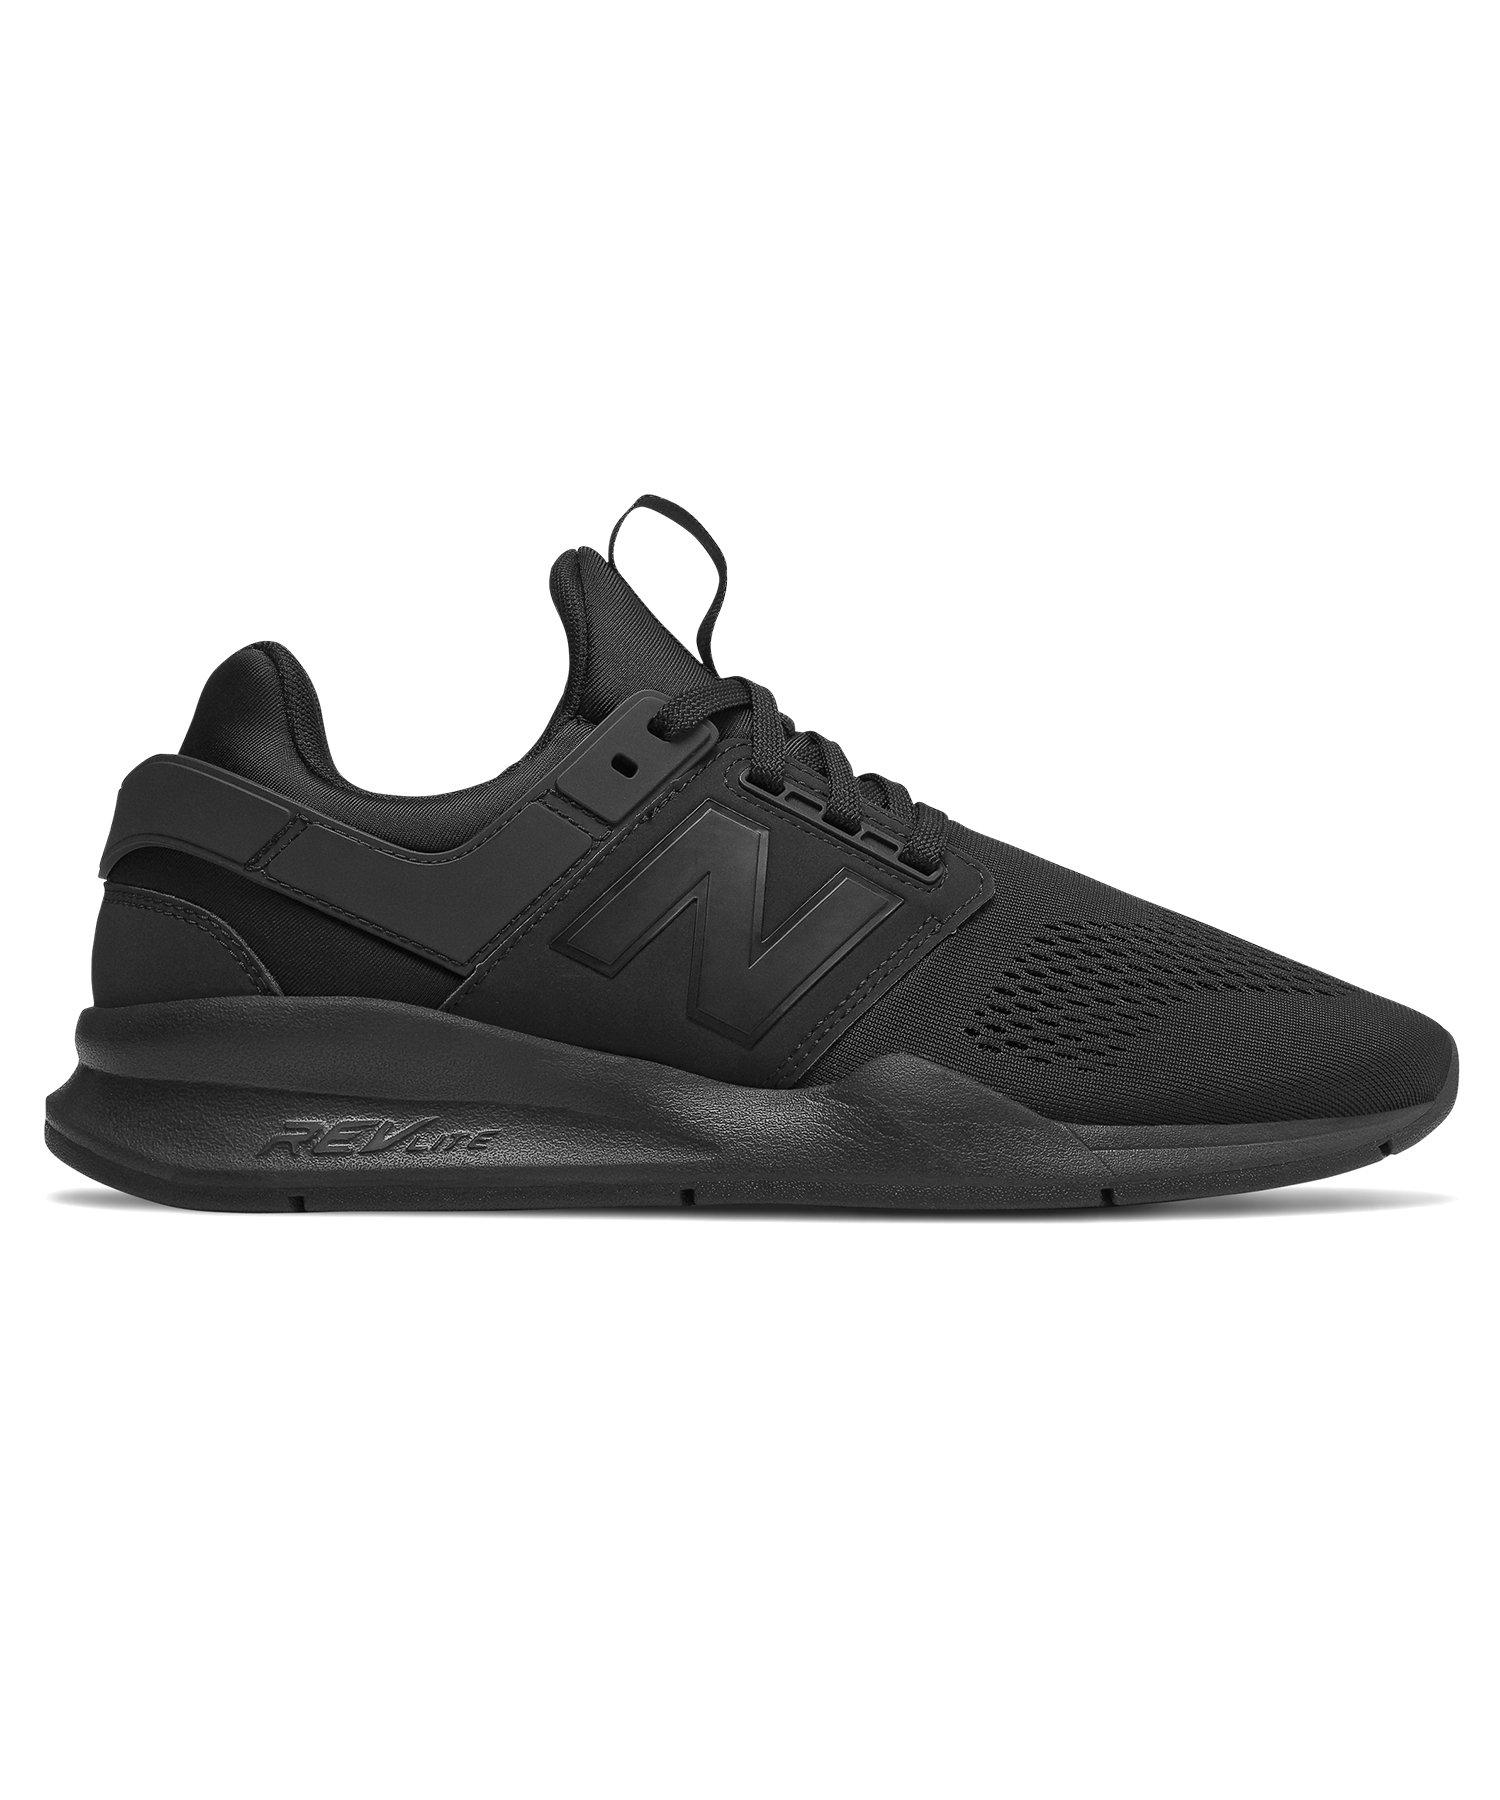 new balance 373 mens trainers size 8